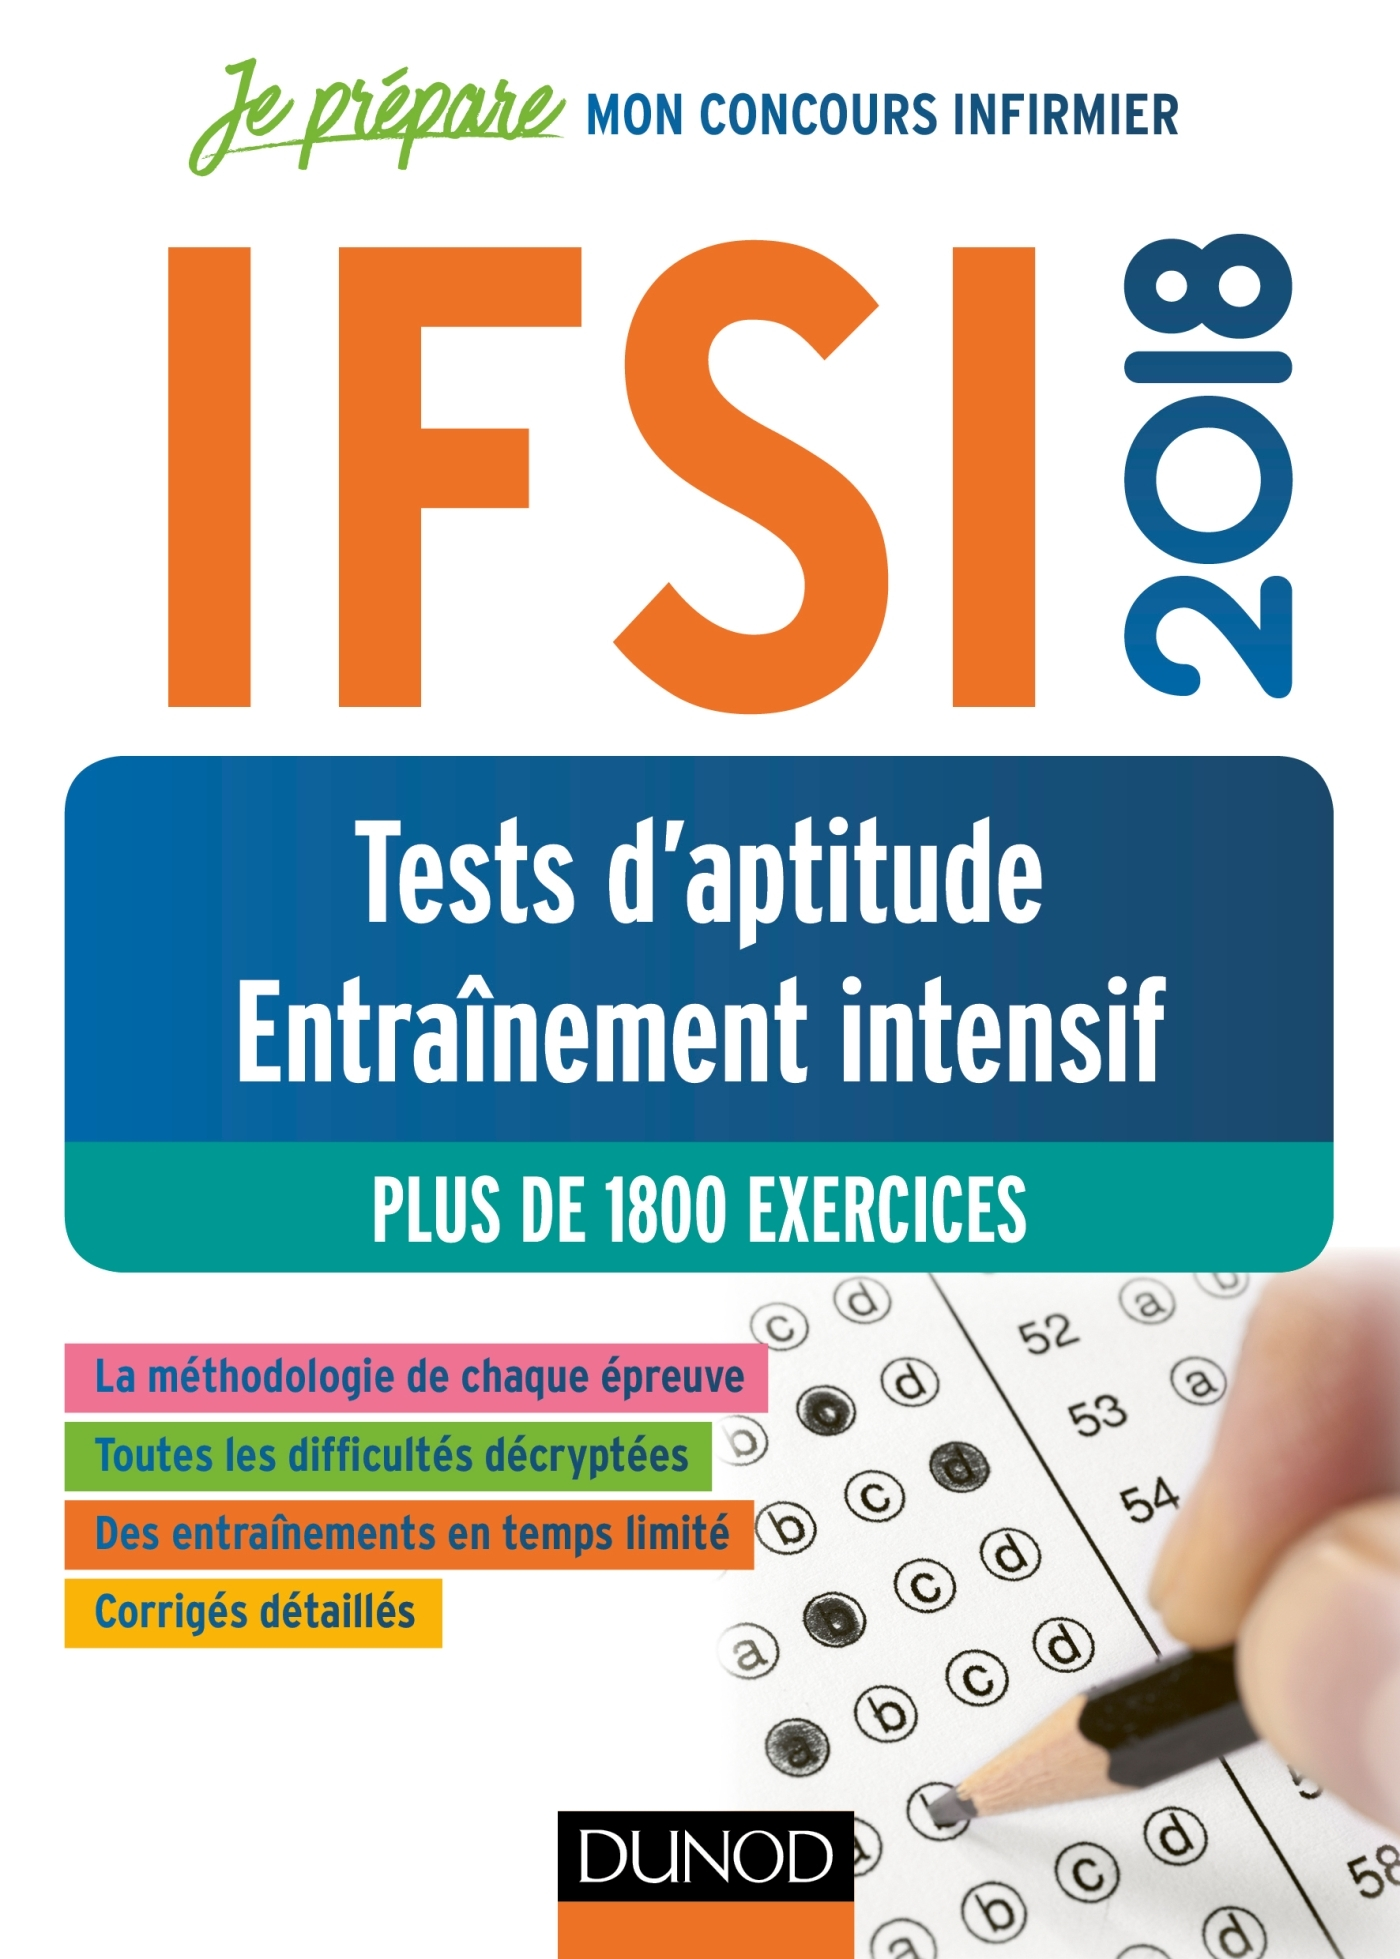 JE PREPARE - IFSI 2018 TESTS D'APTITUDE - ENTRAINEMENT INTENSIF - PLUS DE 1800 EXERCICES